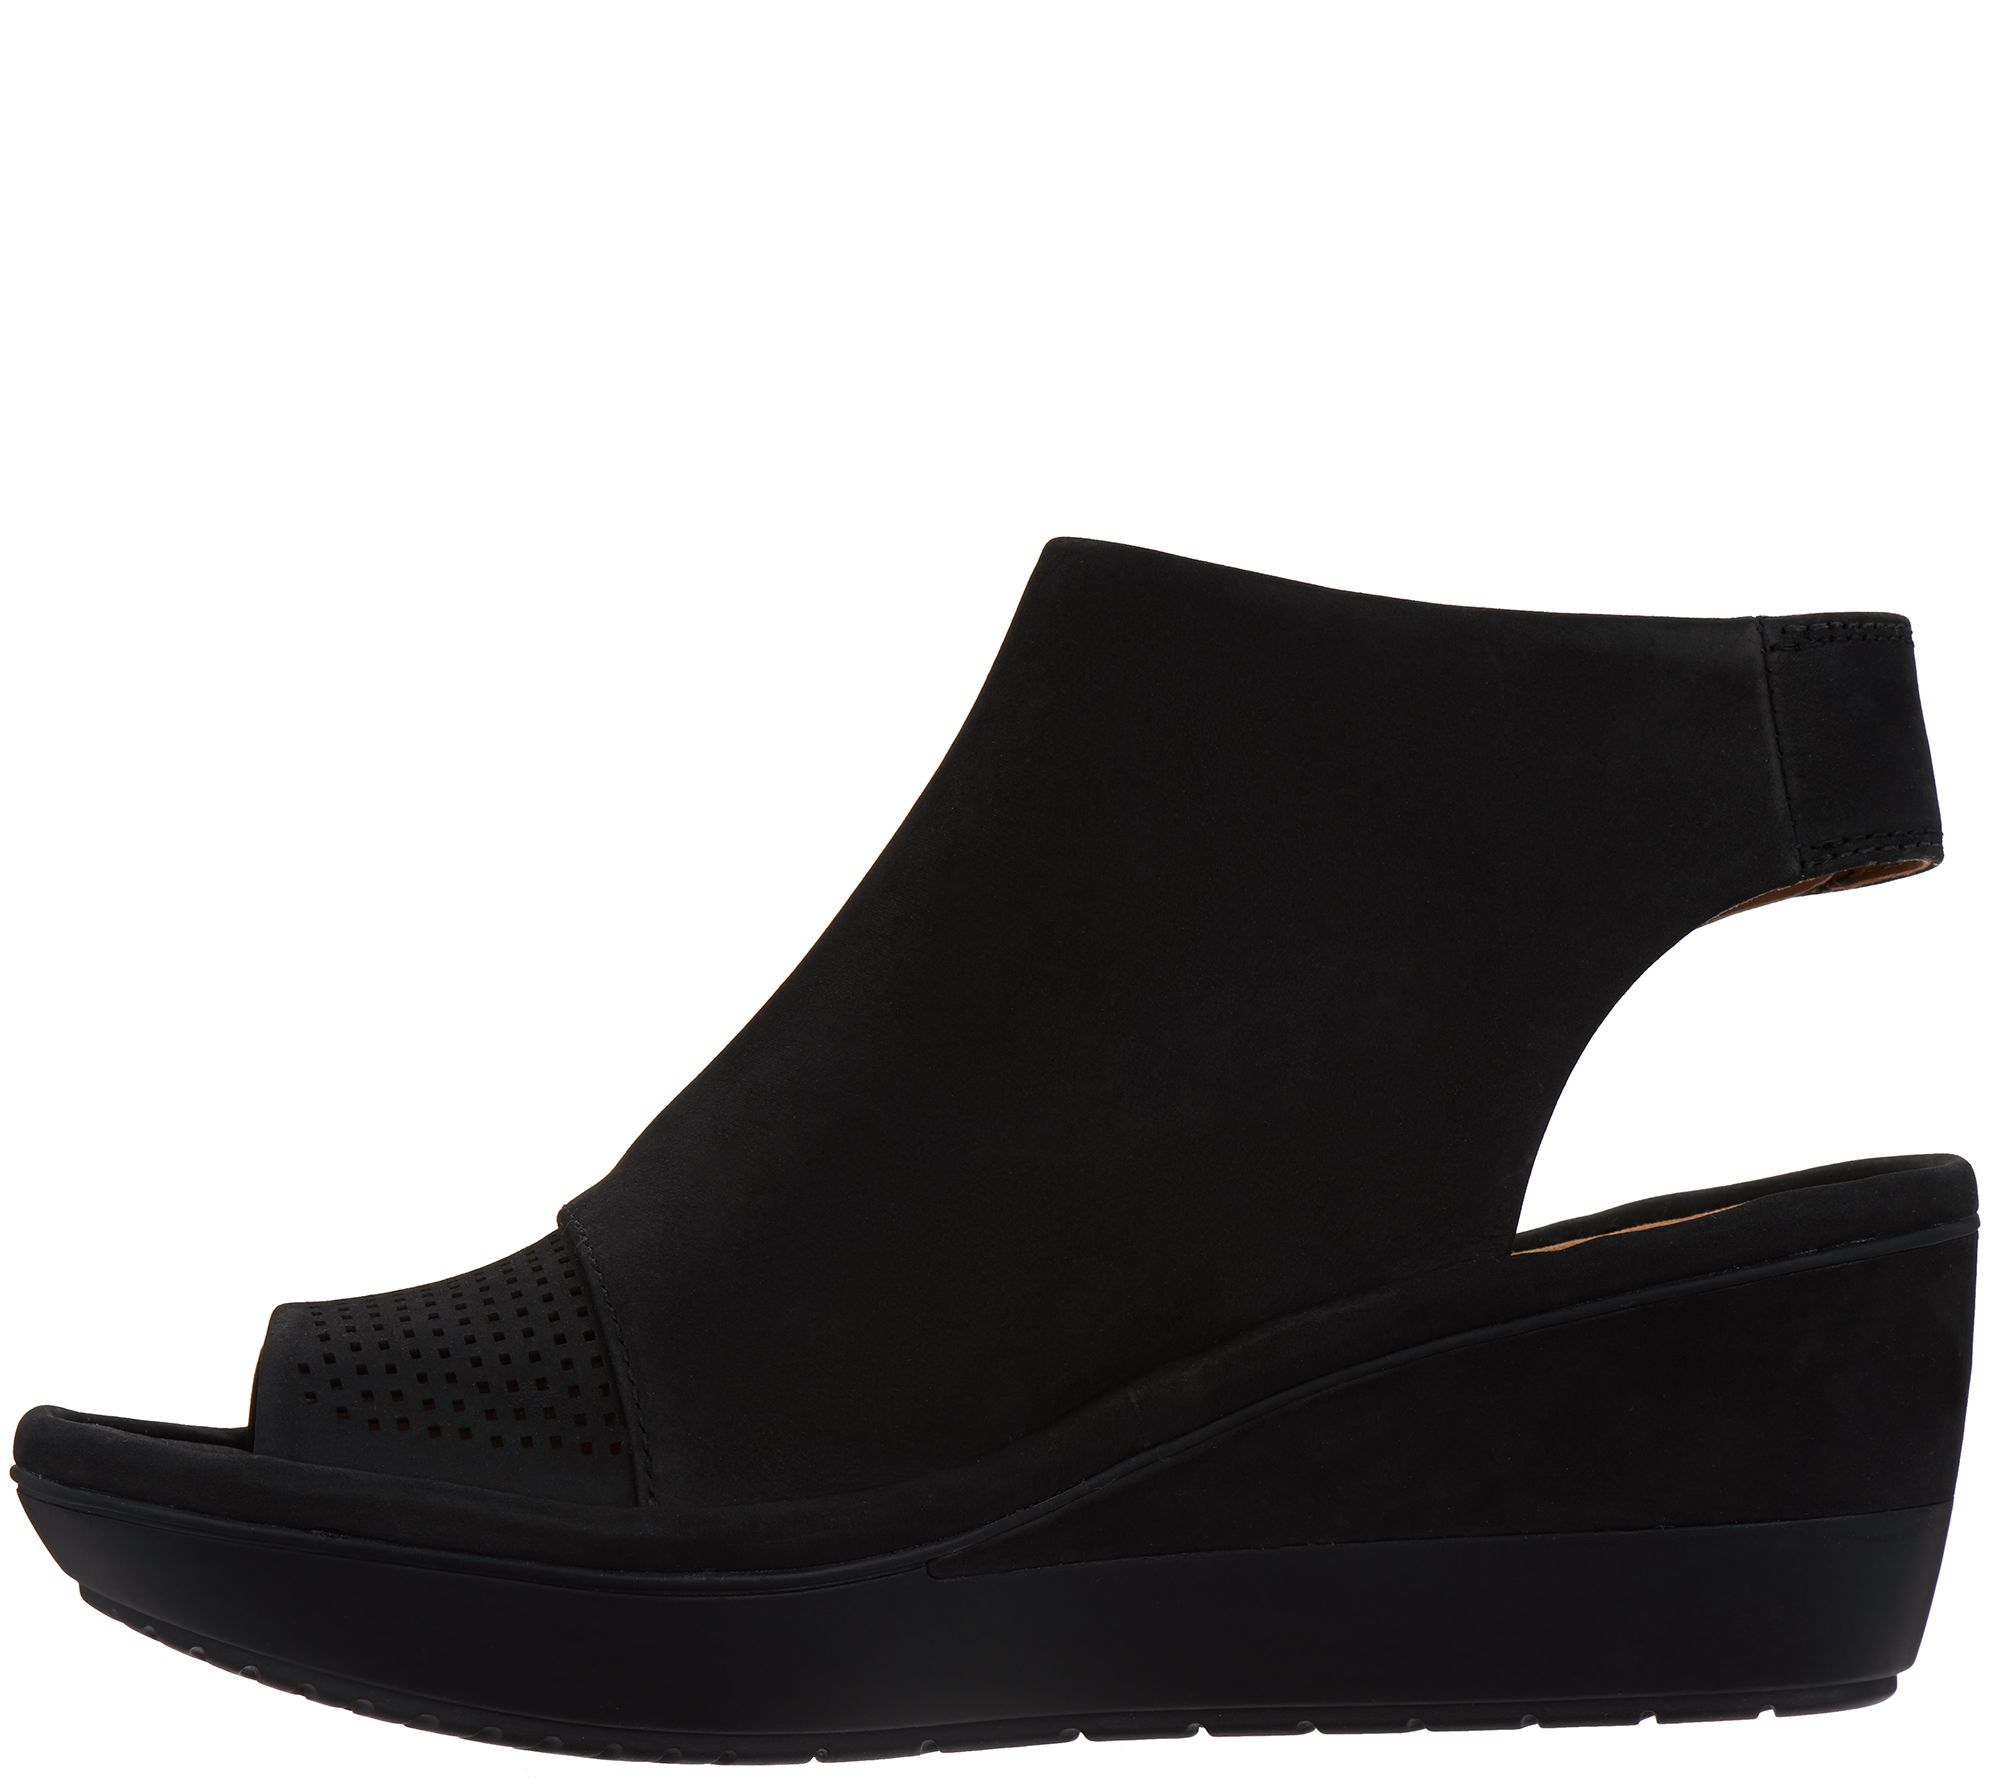 229c30e0a213 Clarks UnStructured Peep Toe Wedge Sandals - Wynnmere Abie - Page 1 —  QVC.com